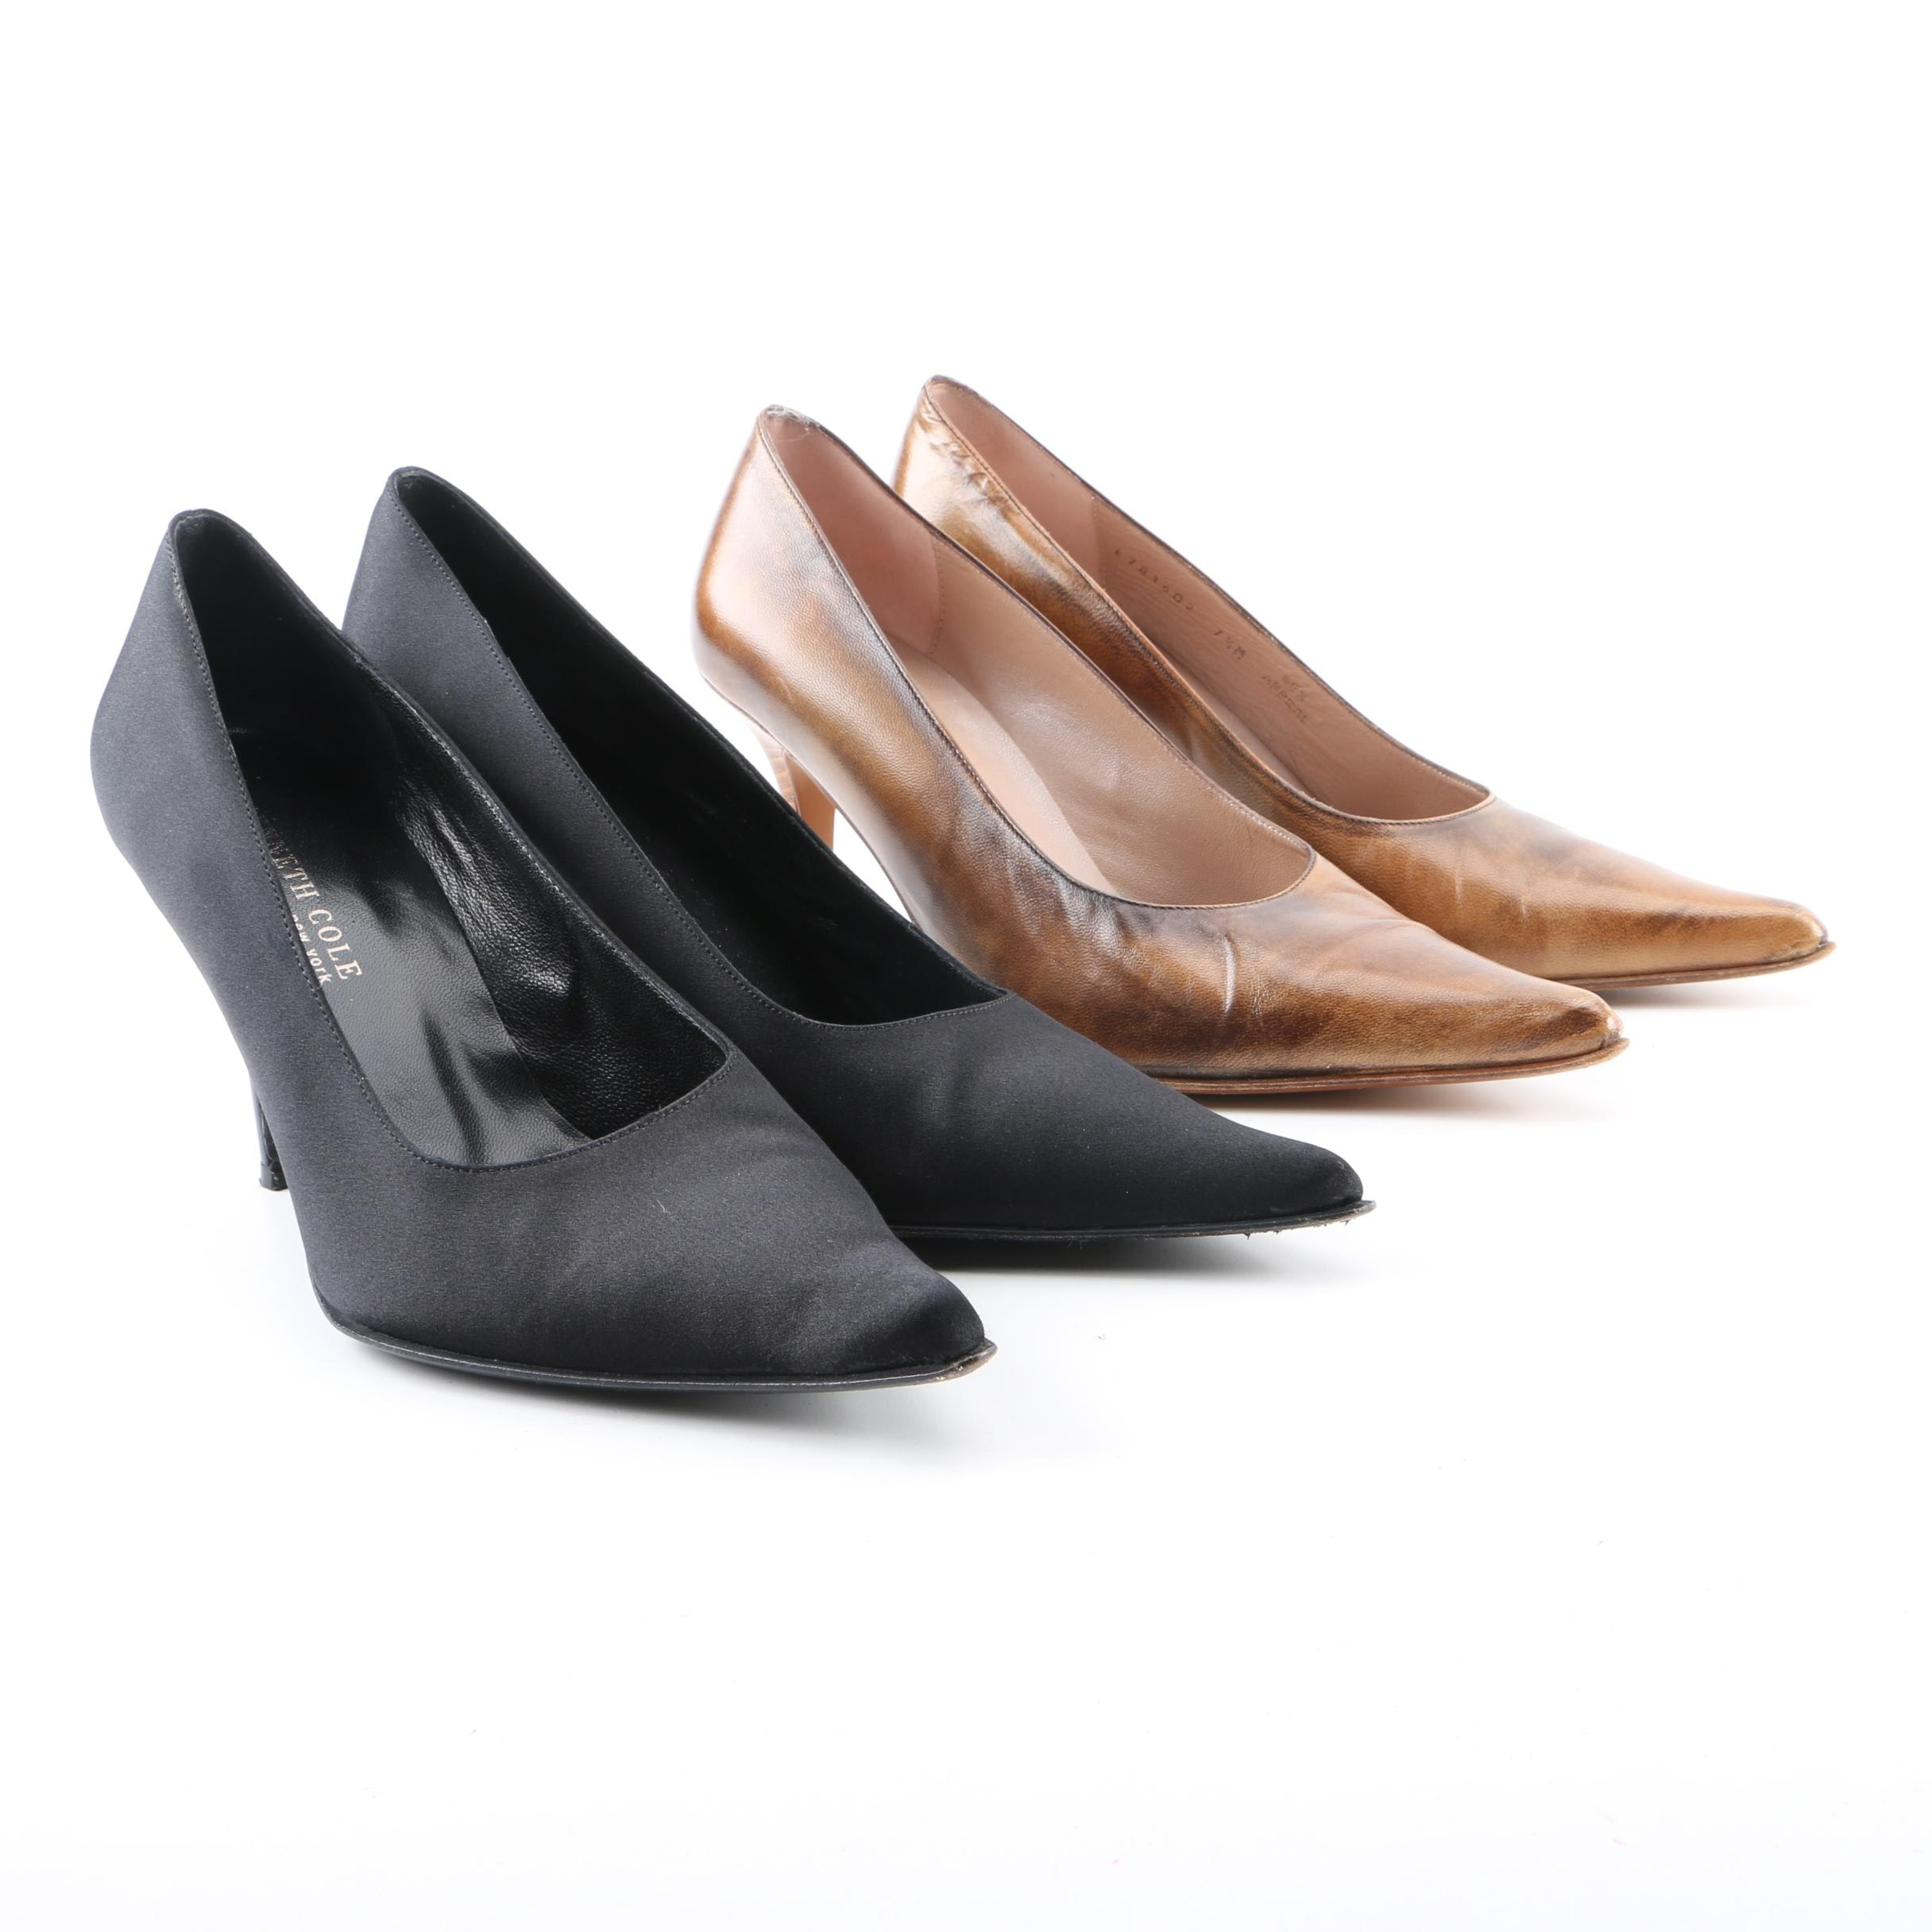 Kenneth Cole New York Brown Leather and Black Satin Pumps